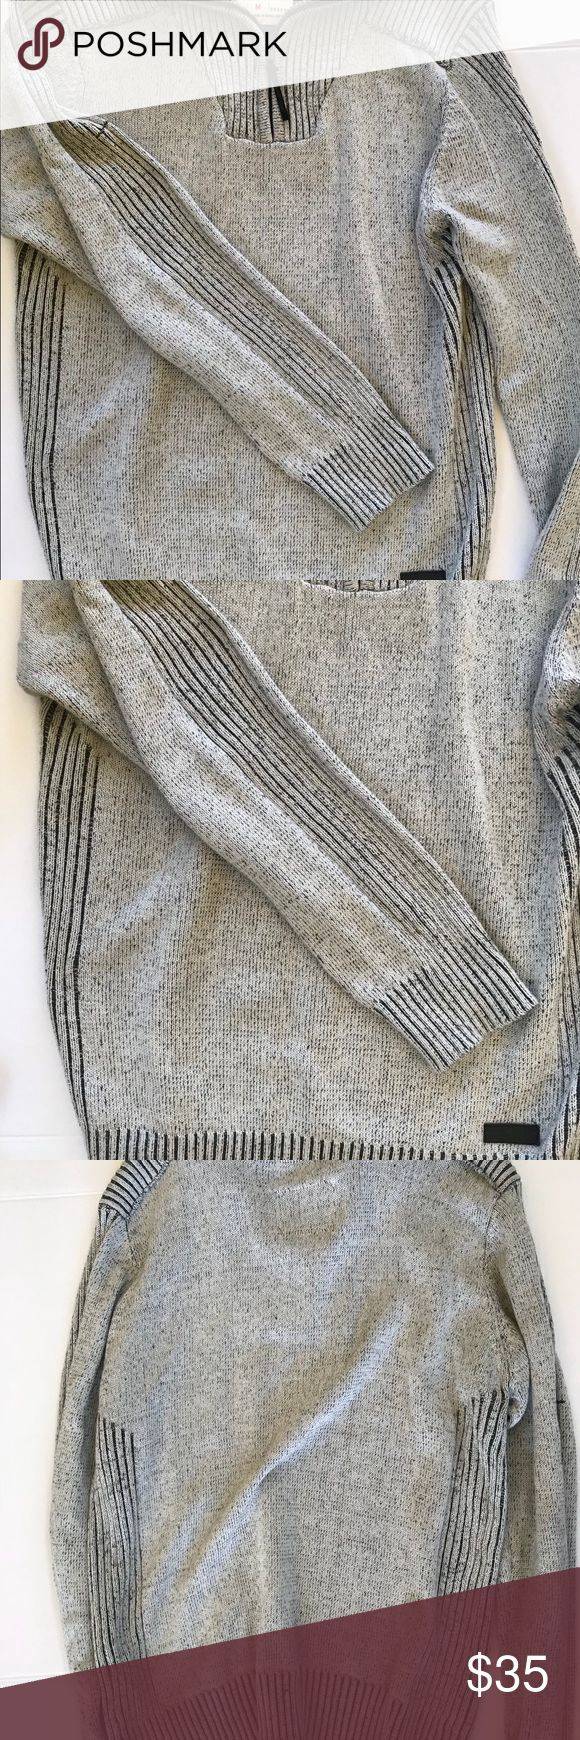 Projek Raw Gray Color 1/4 Zip Sweater M Projek Raw Gray Exposed Seam Heather Gray Color 1/4 Zip Sweater M  Measurments  Arm pit to arm pit 19 Arm pit to end of Sleeve 19 top to bottom 27  100% Cotton projek Sweaters Zip Up